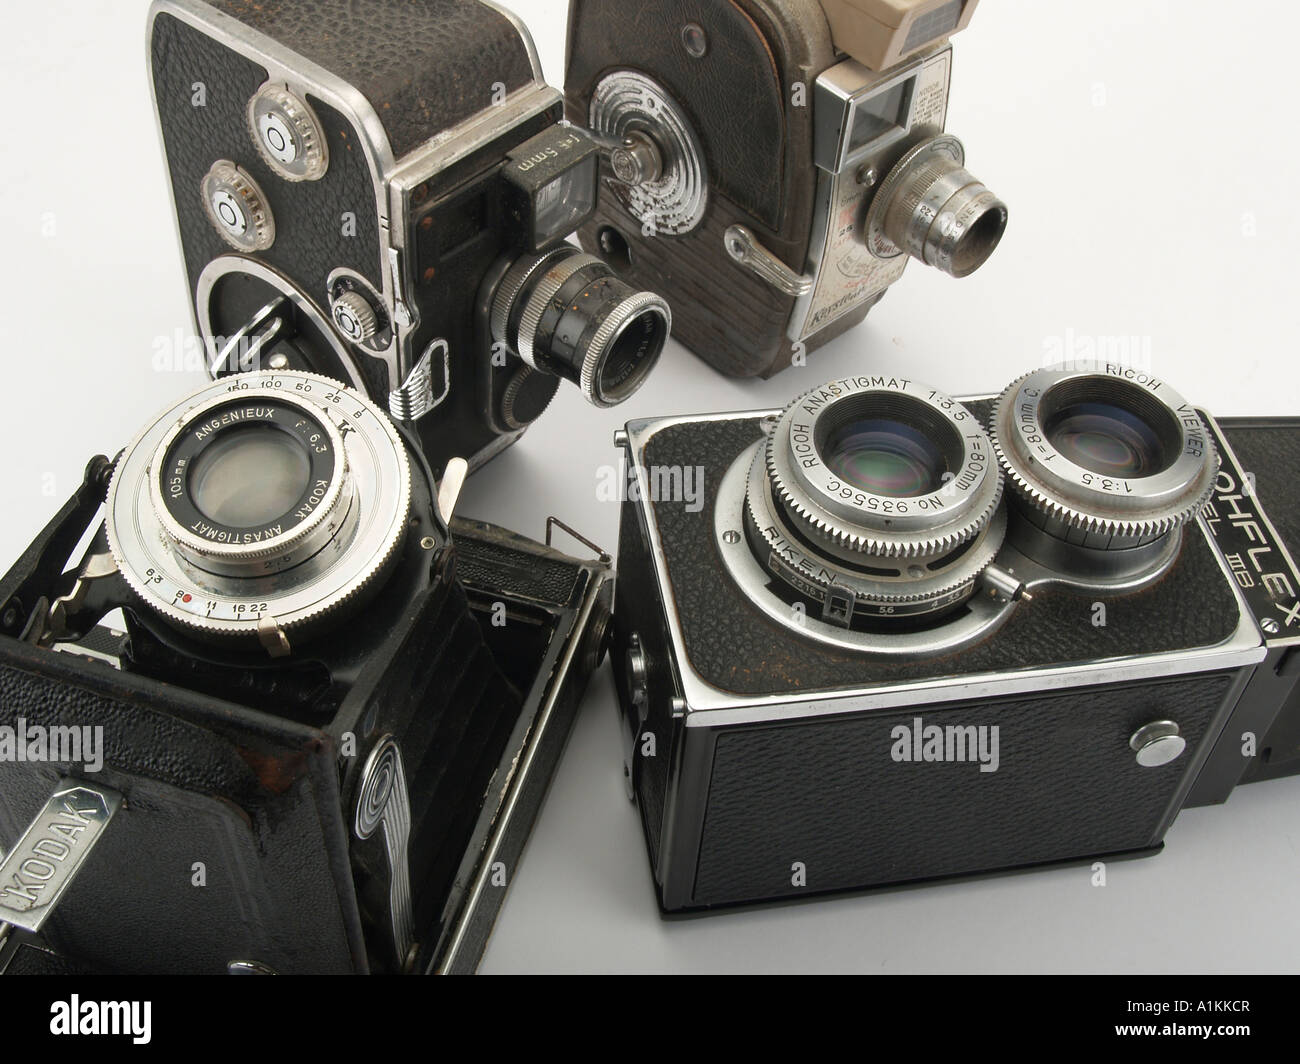 Roll Film Device Stock Photos Images Alamy Ricoh Strap St 3 W An Assortment Of Old Style Cameras Image